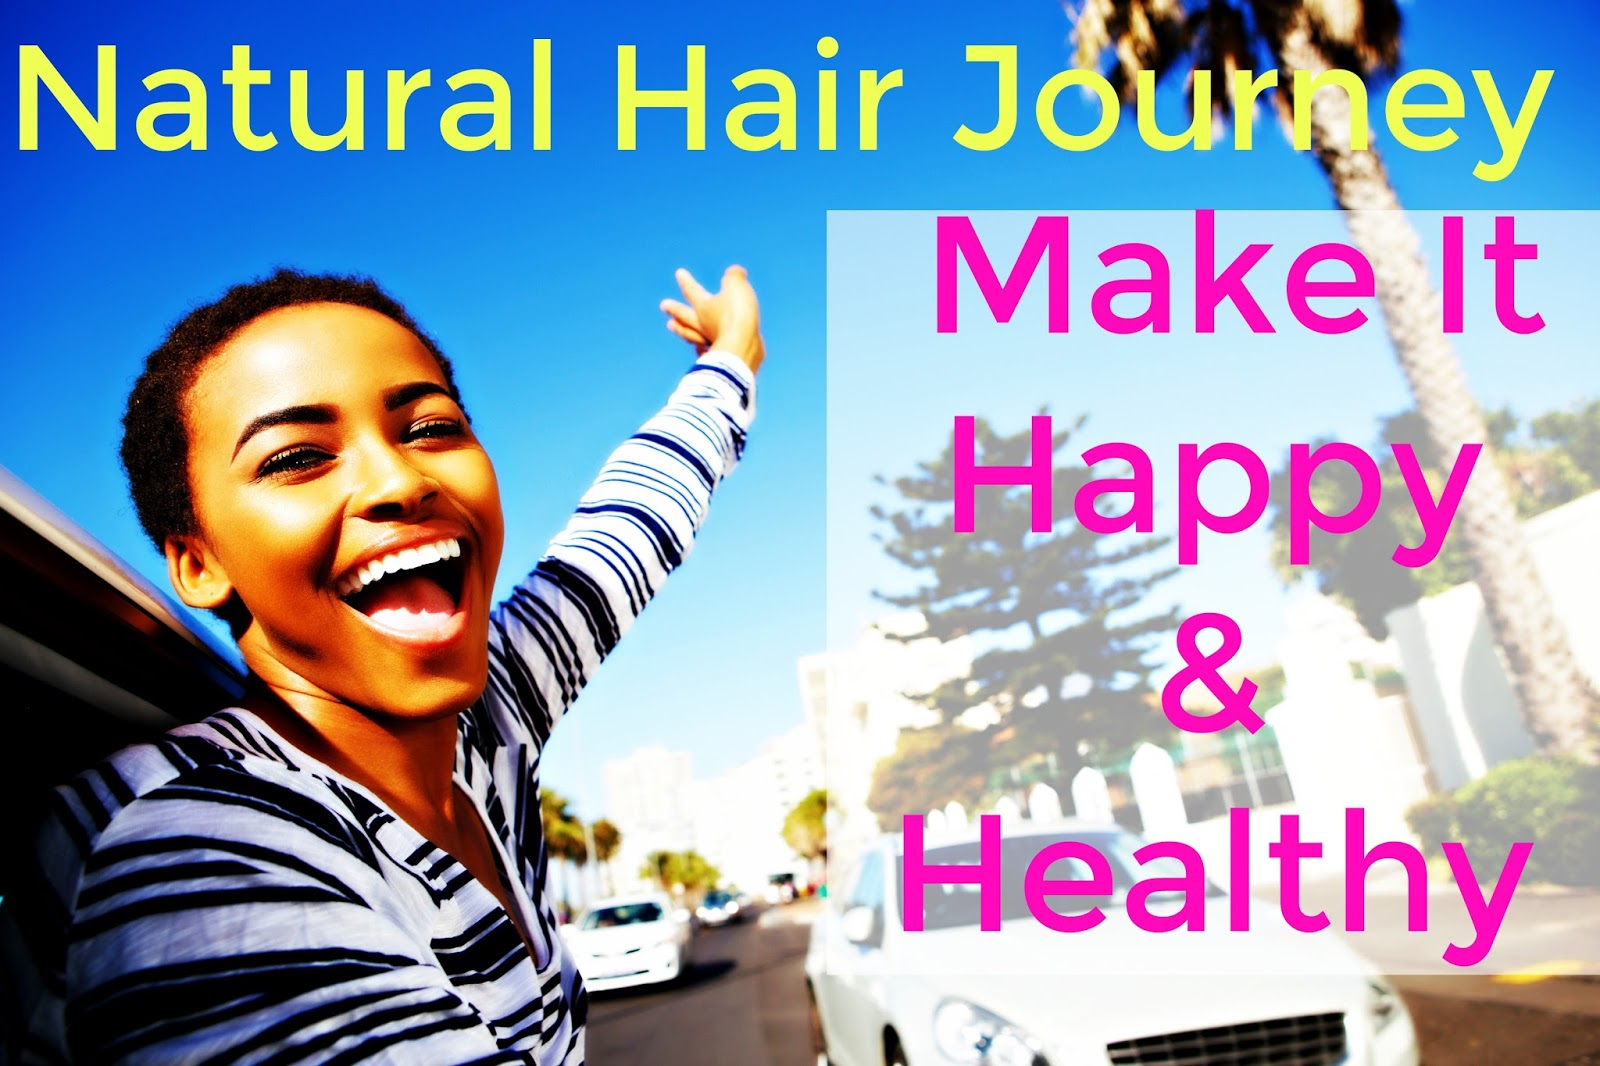 Natural Hair Journey is special and unique for every woman who is going natural. Check out how you can make yours successful and happy!